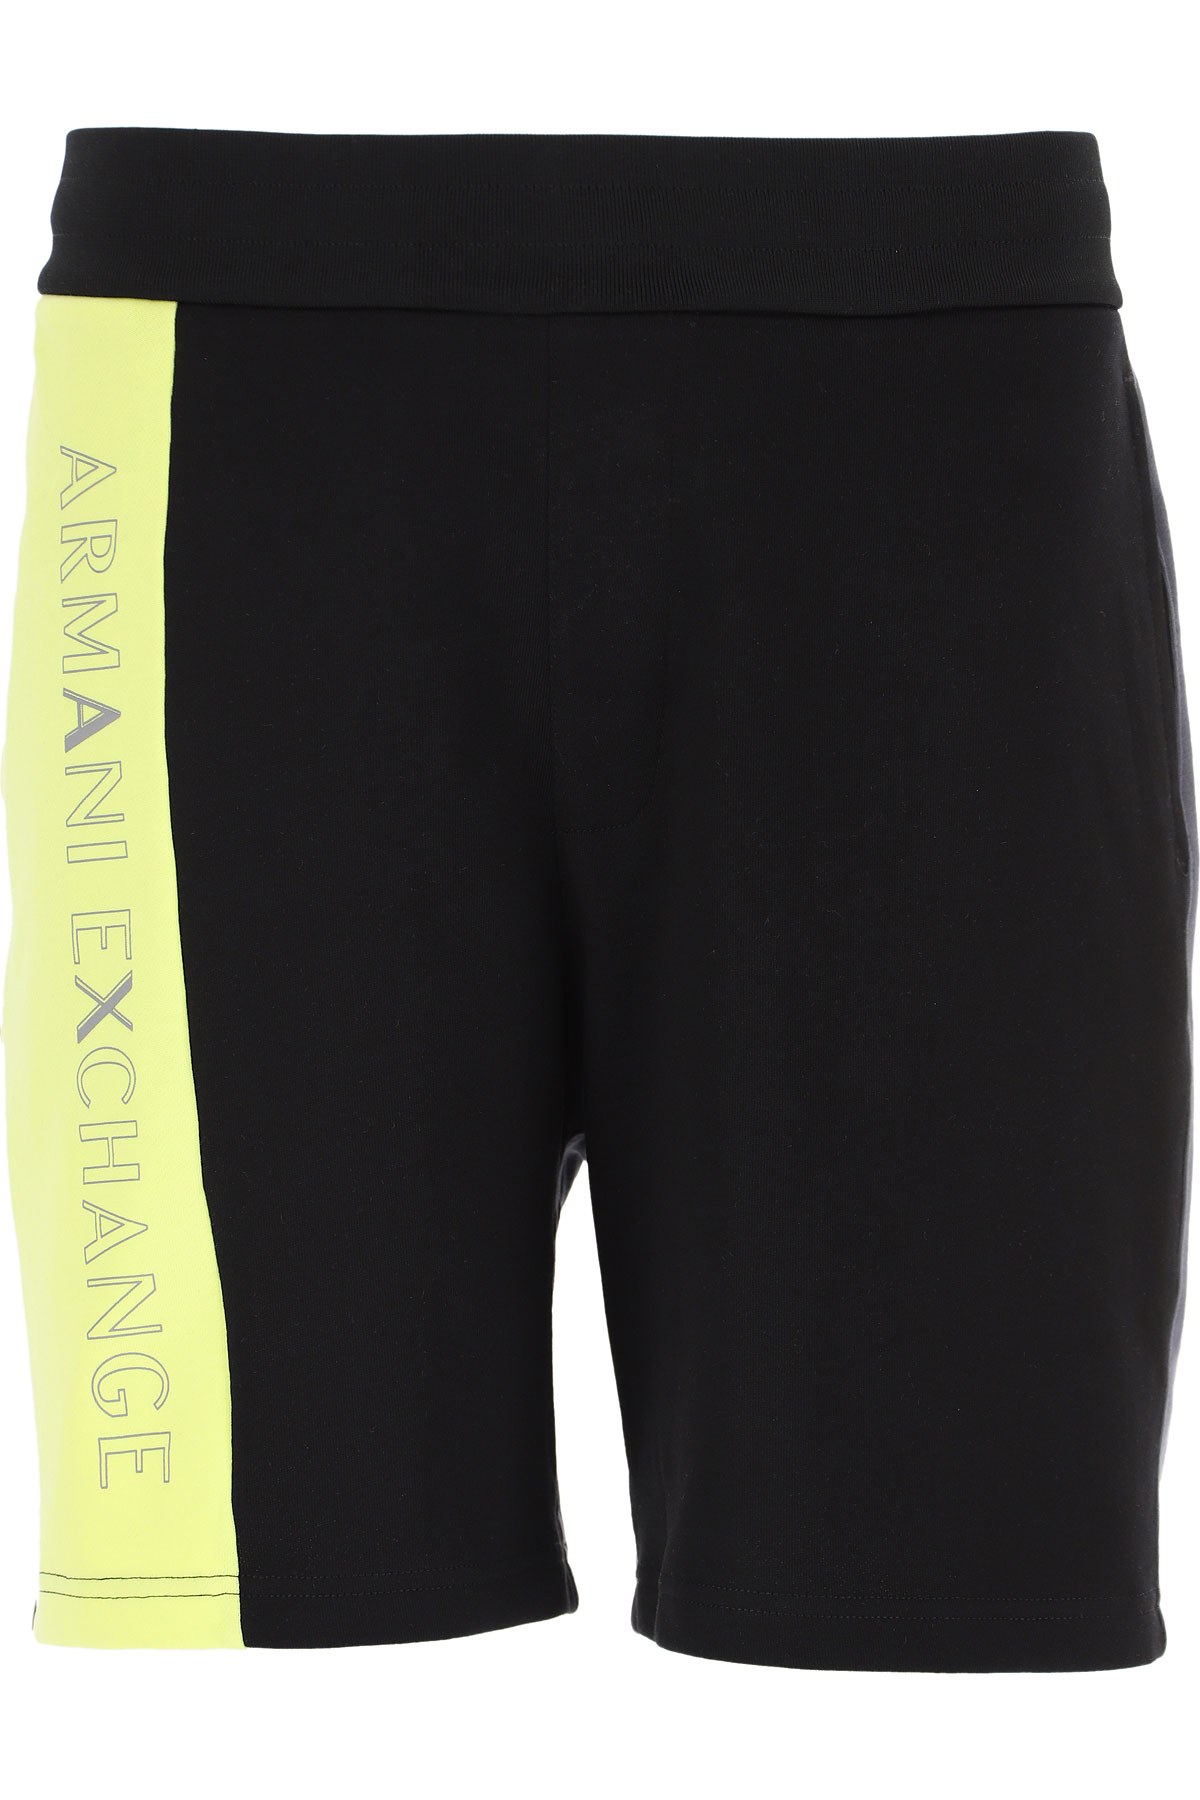 Armani Exchange Shorts for Men On Sale, Black, Cotton, 2019, L M XL